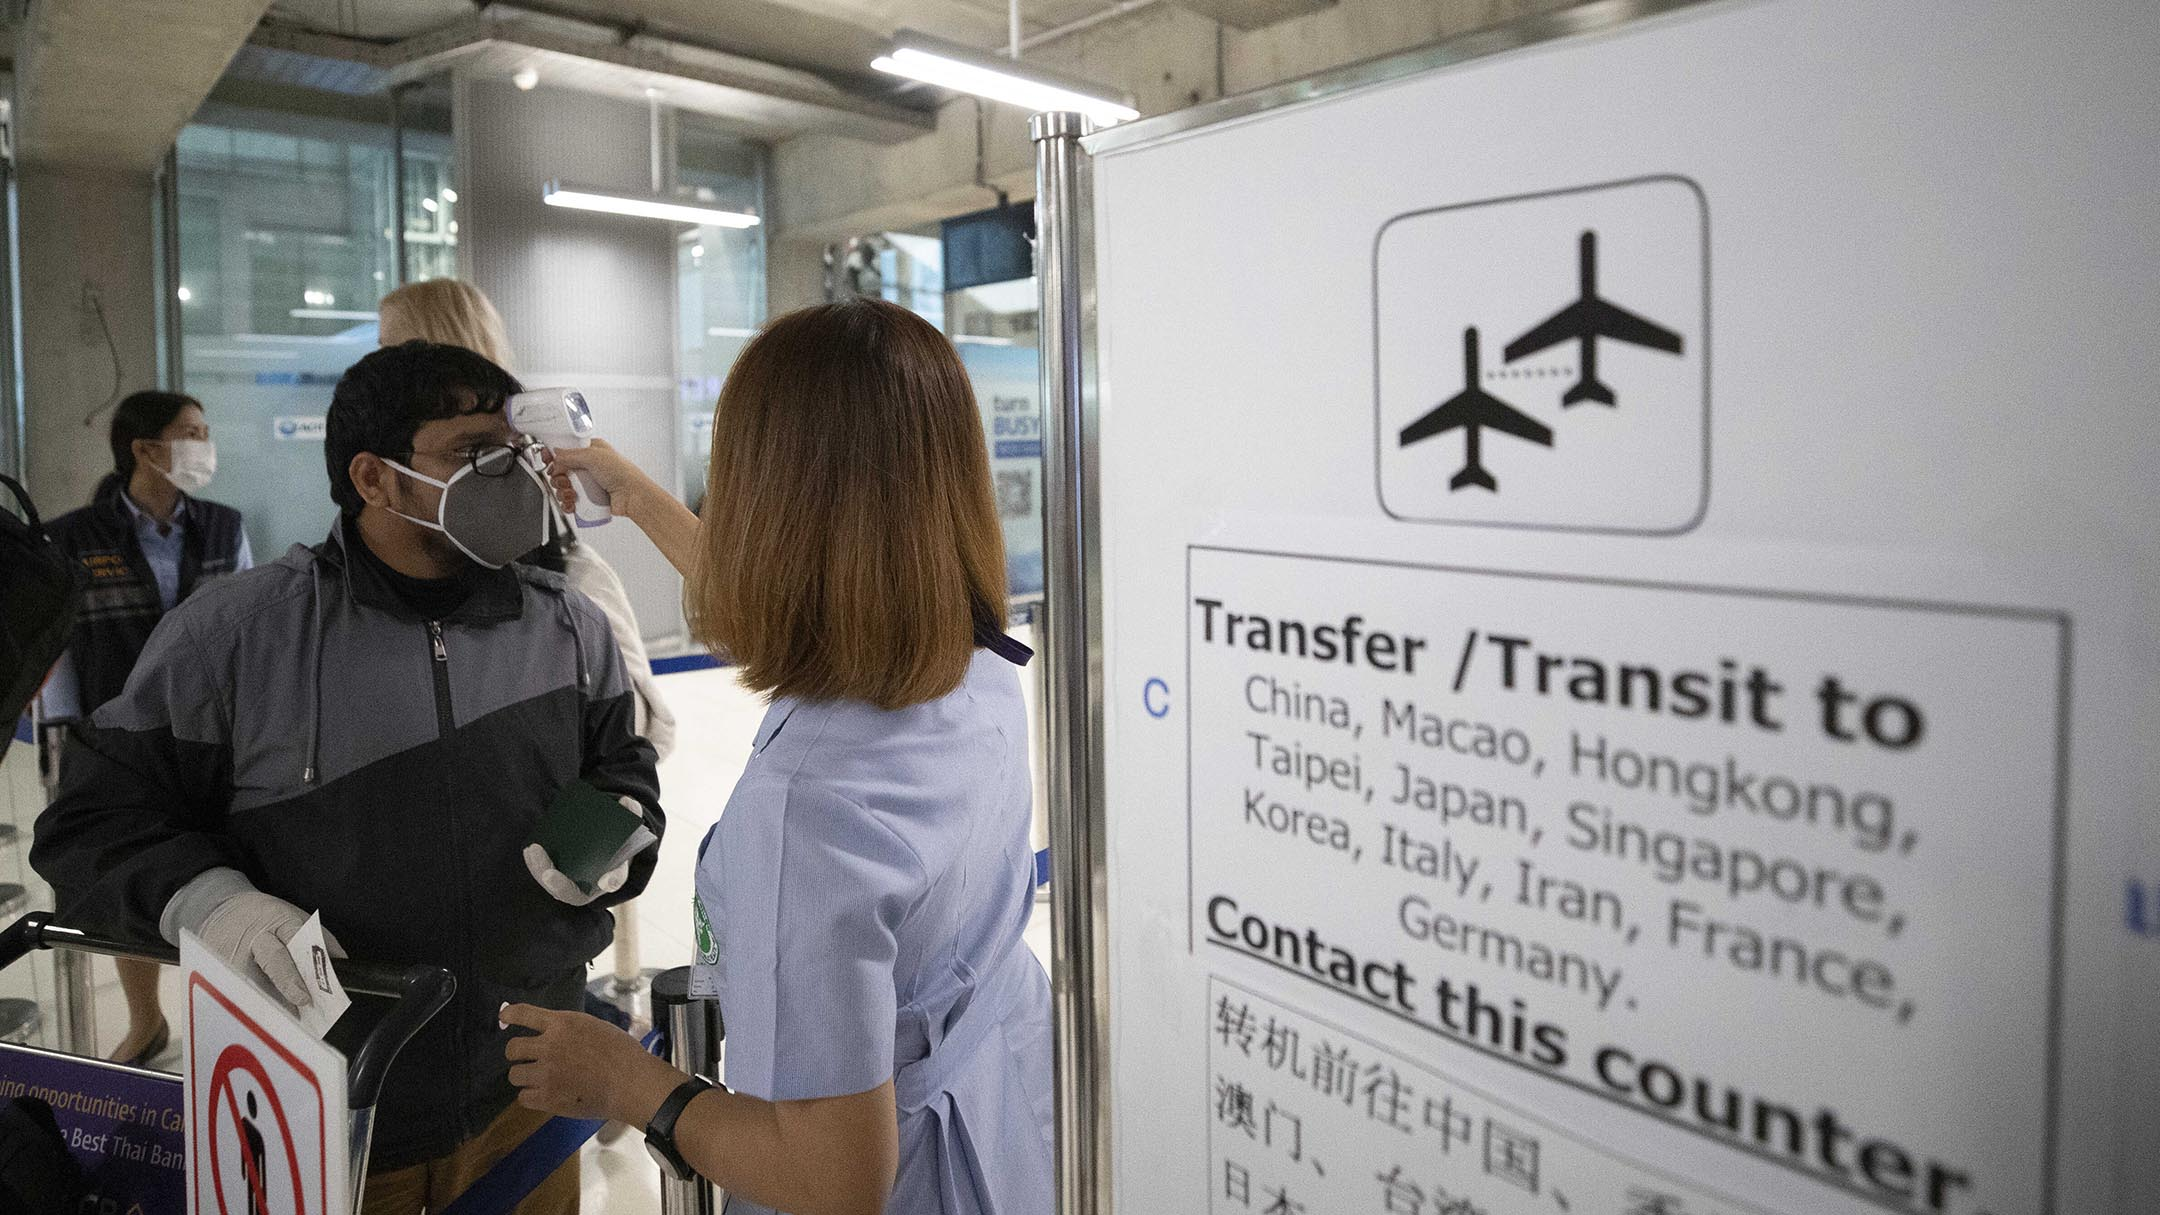 The tourism authority aims to reduce quarantine requirements in Thailand and visitor countries